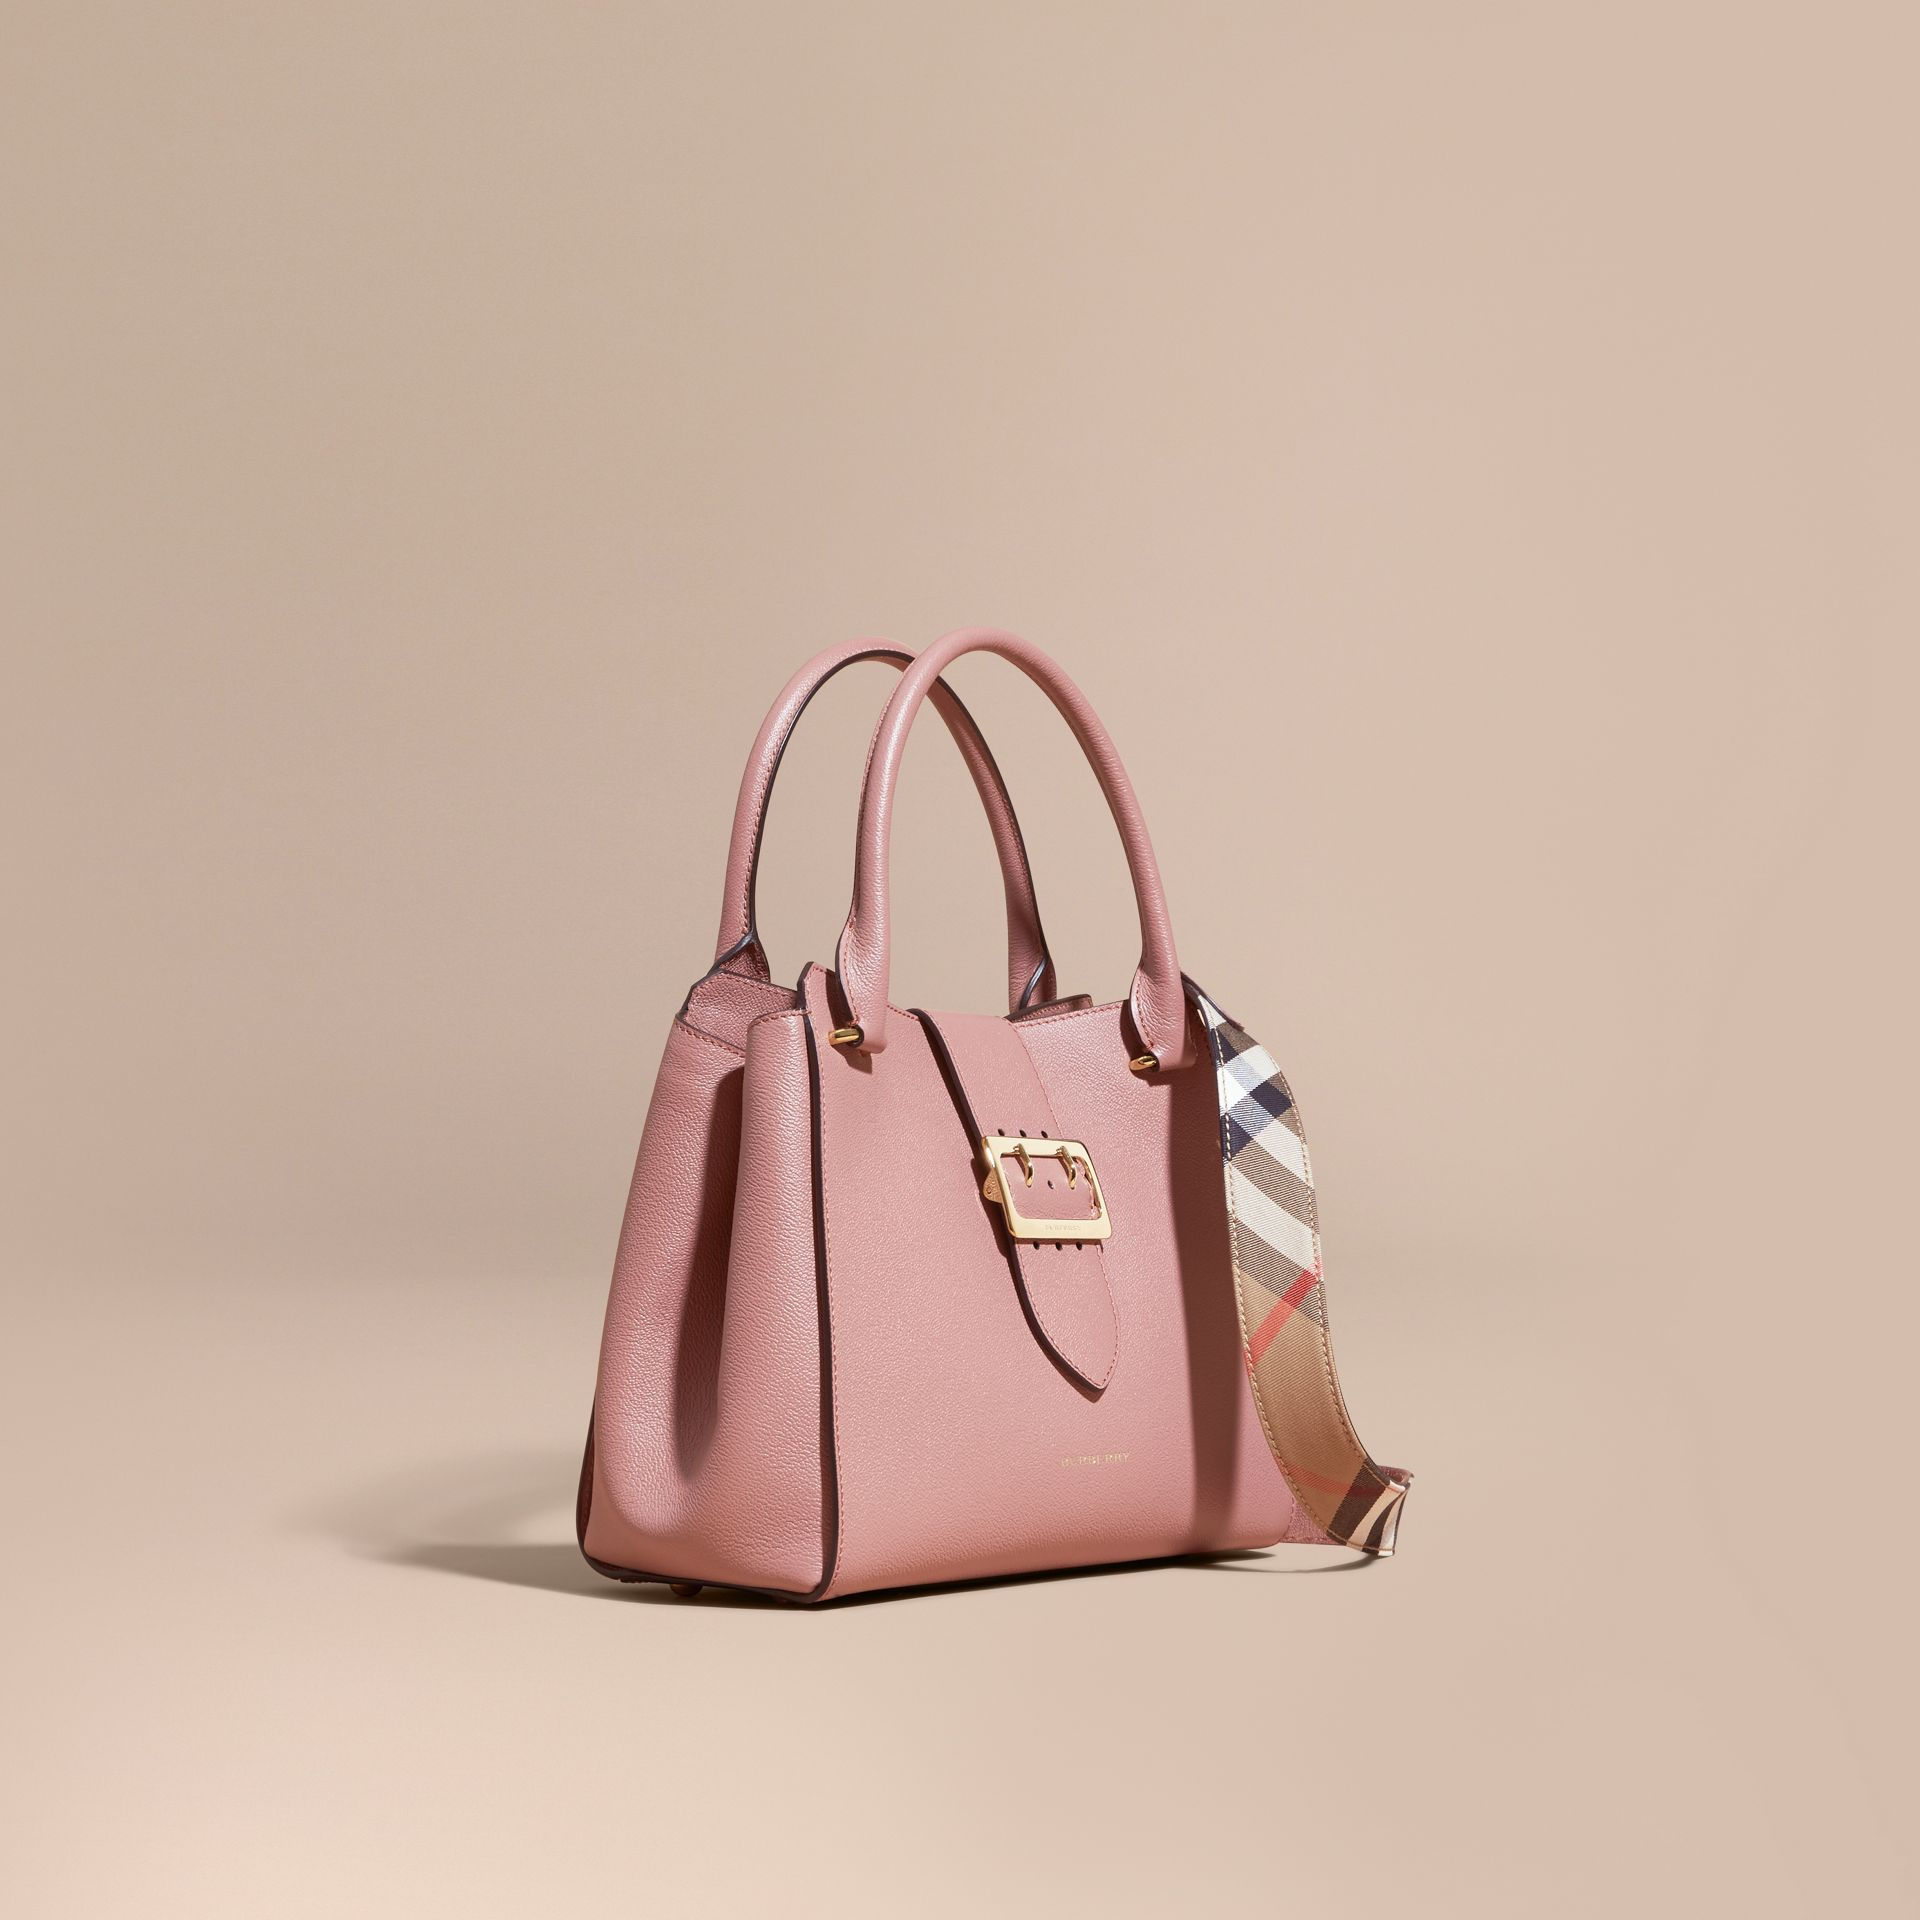 Dusty pink The Medium Buckle Tote in Grainy Leather Dusty Pink - gallery image 1